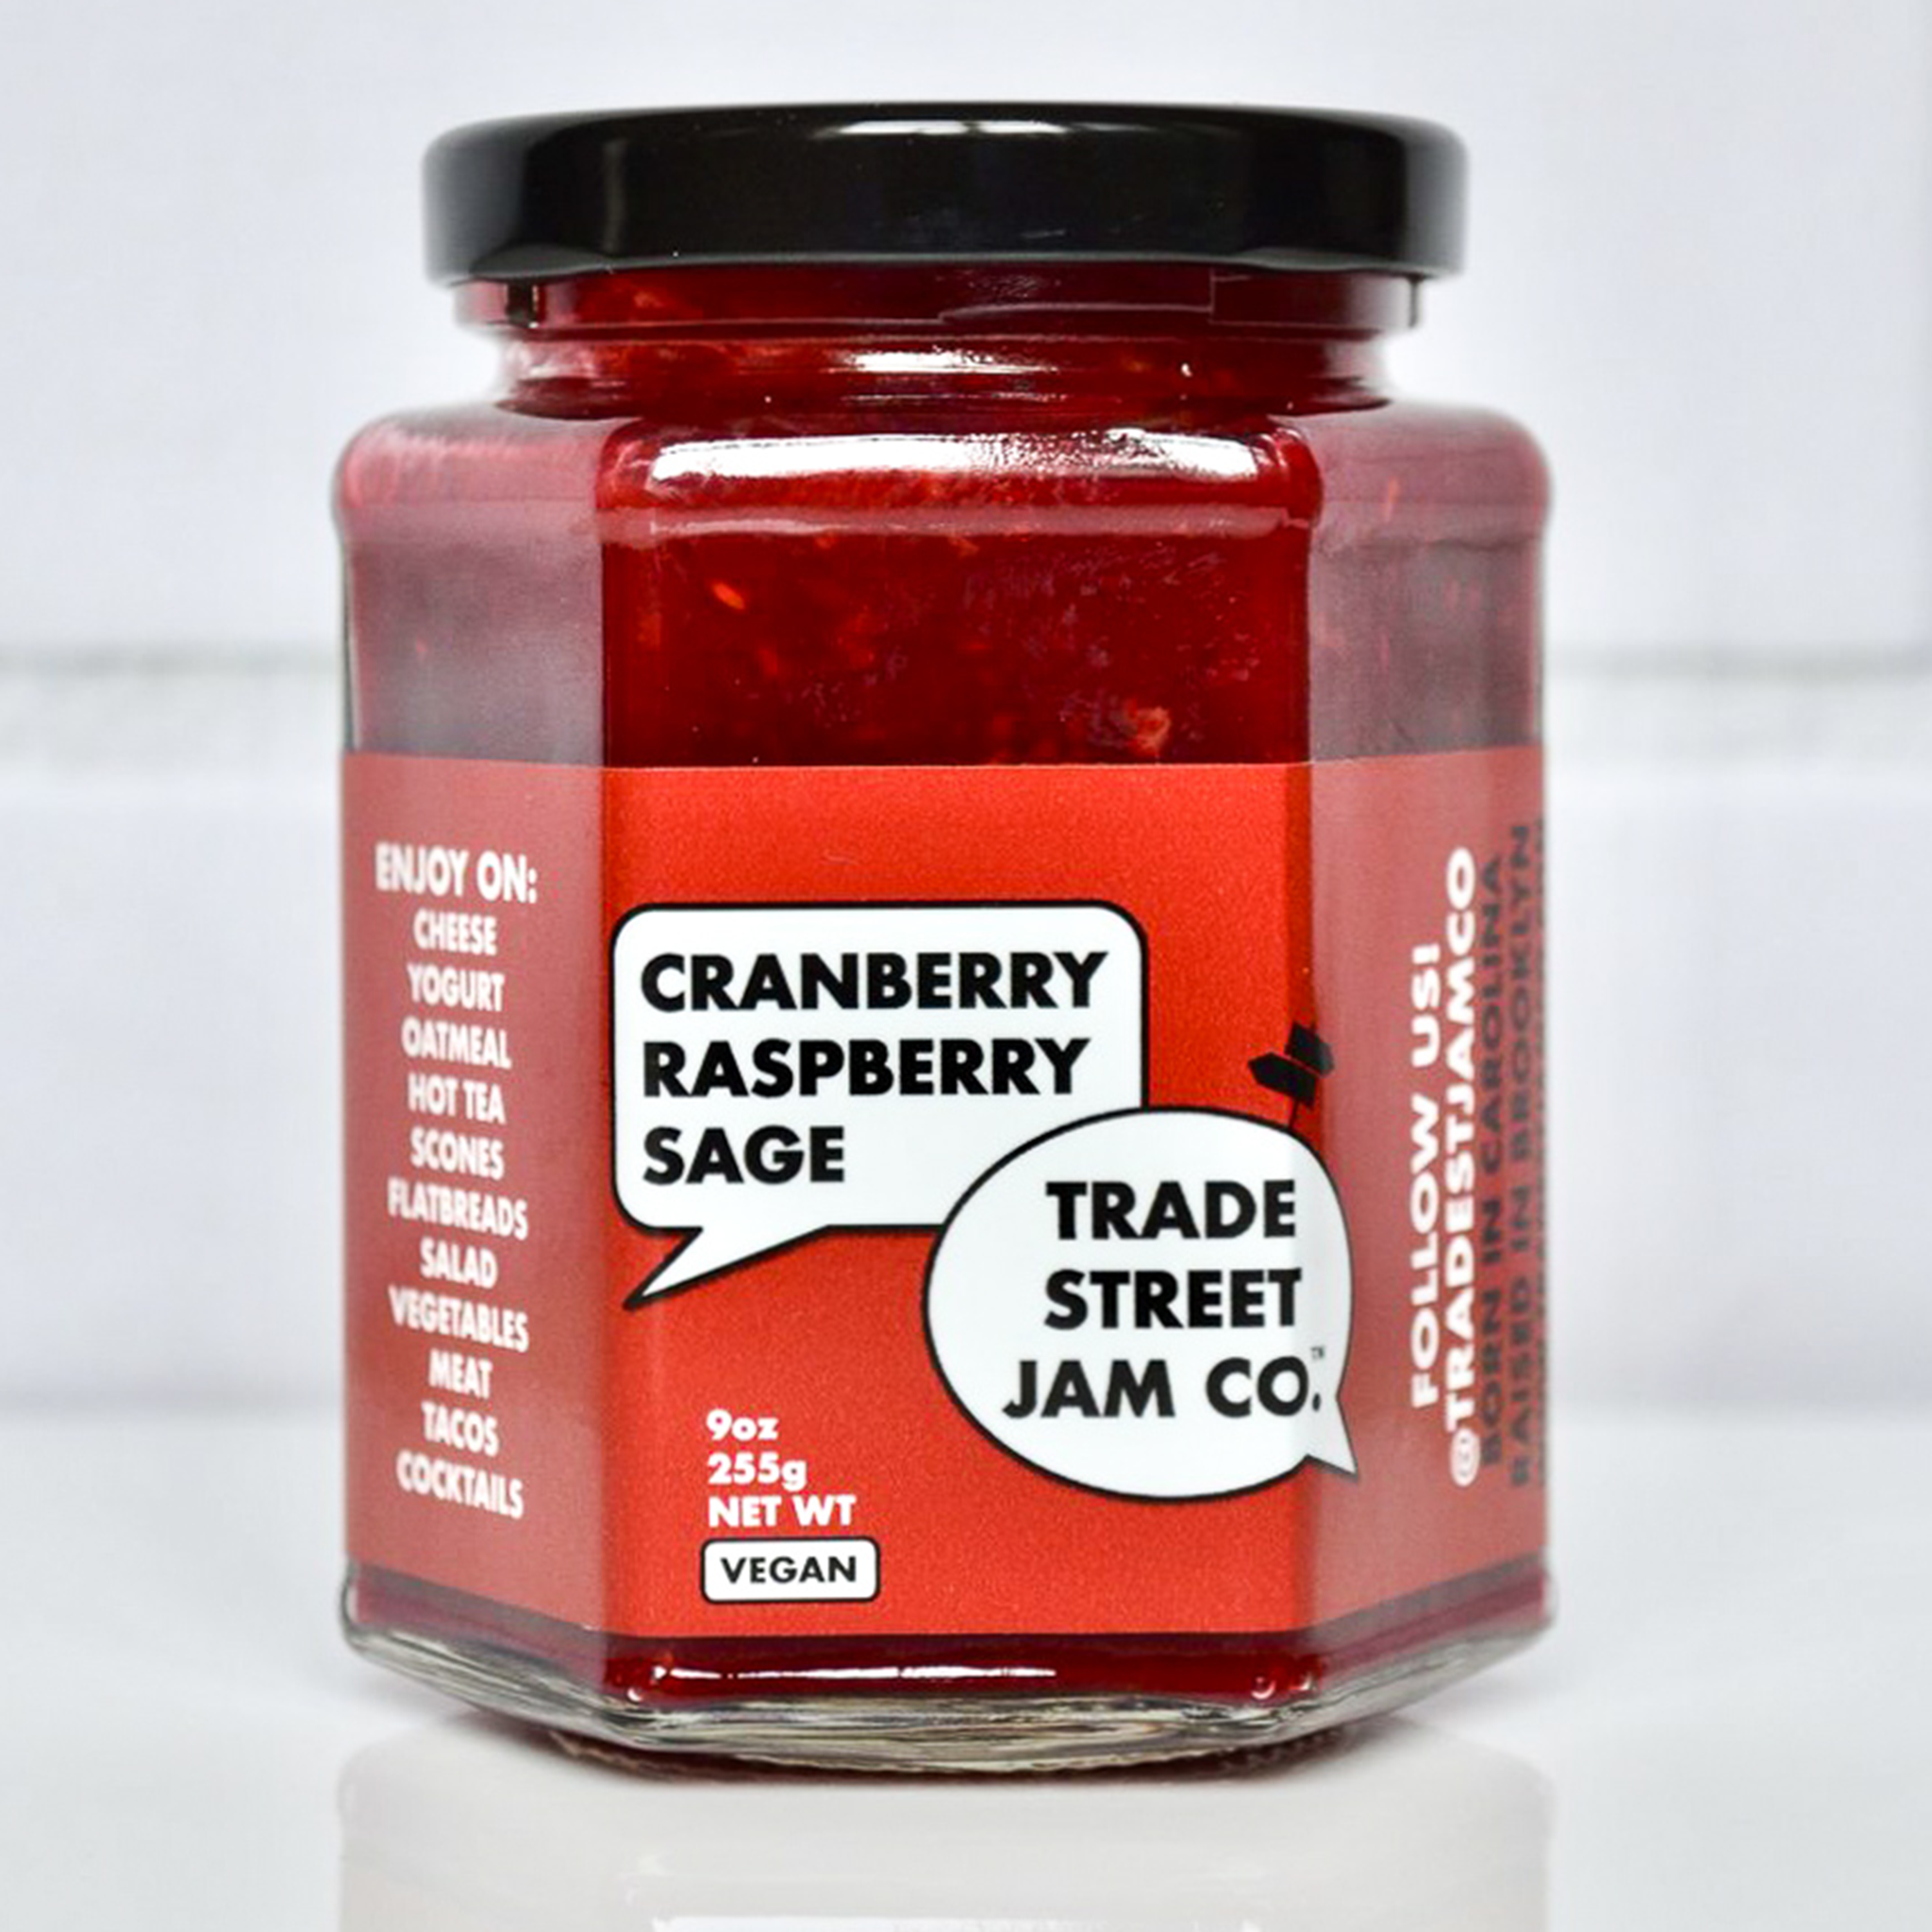 Trade Street Jam Co Cranberry Jam in glass jar with red label